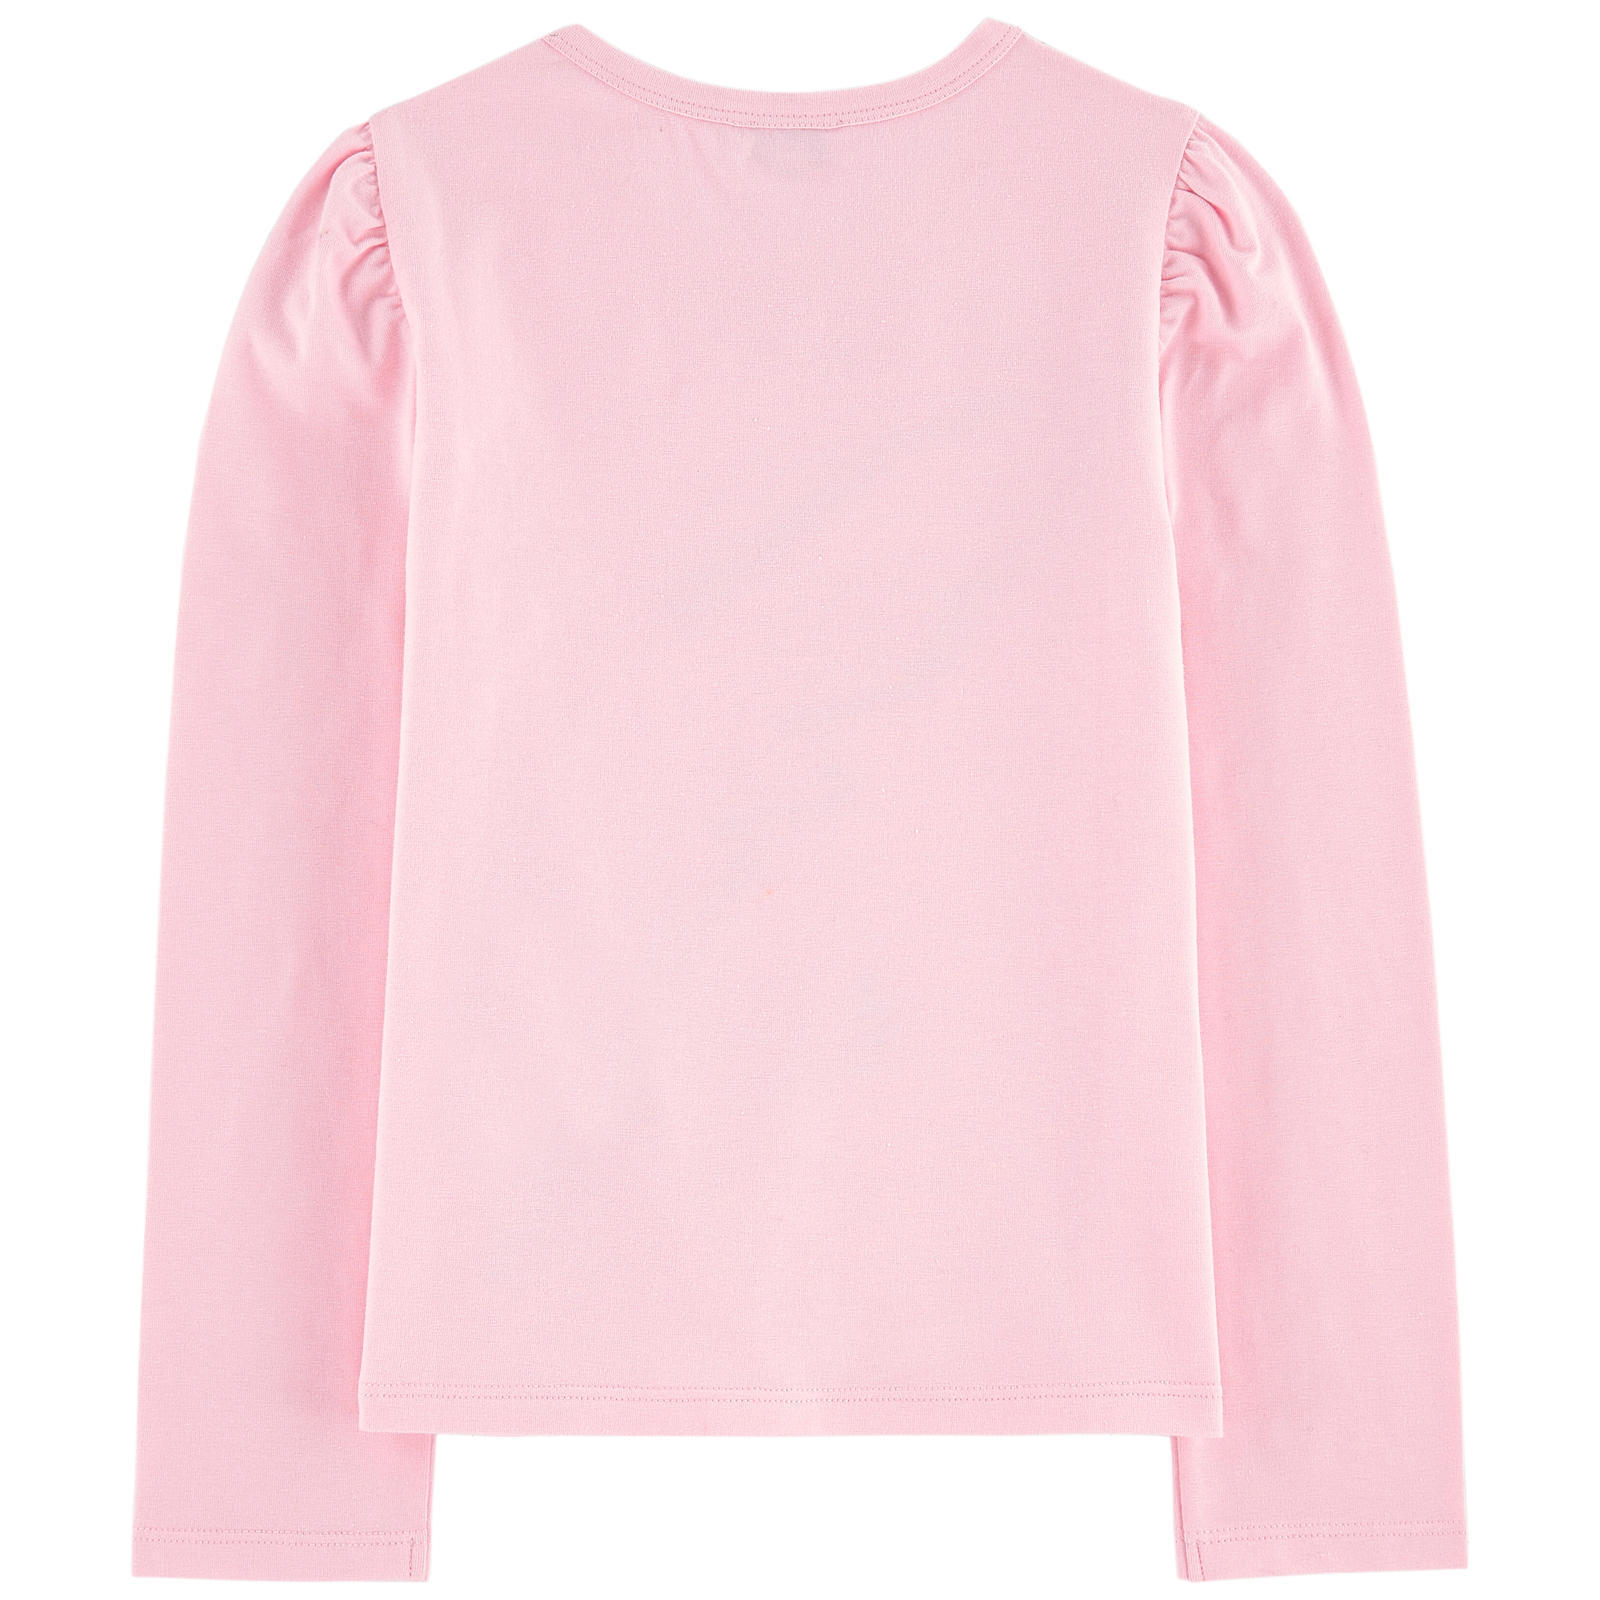 KENZO★2017AW★ロゴ入長袖Tシャツ★ライトピンク★8~12Y